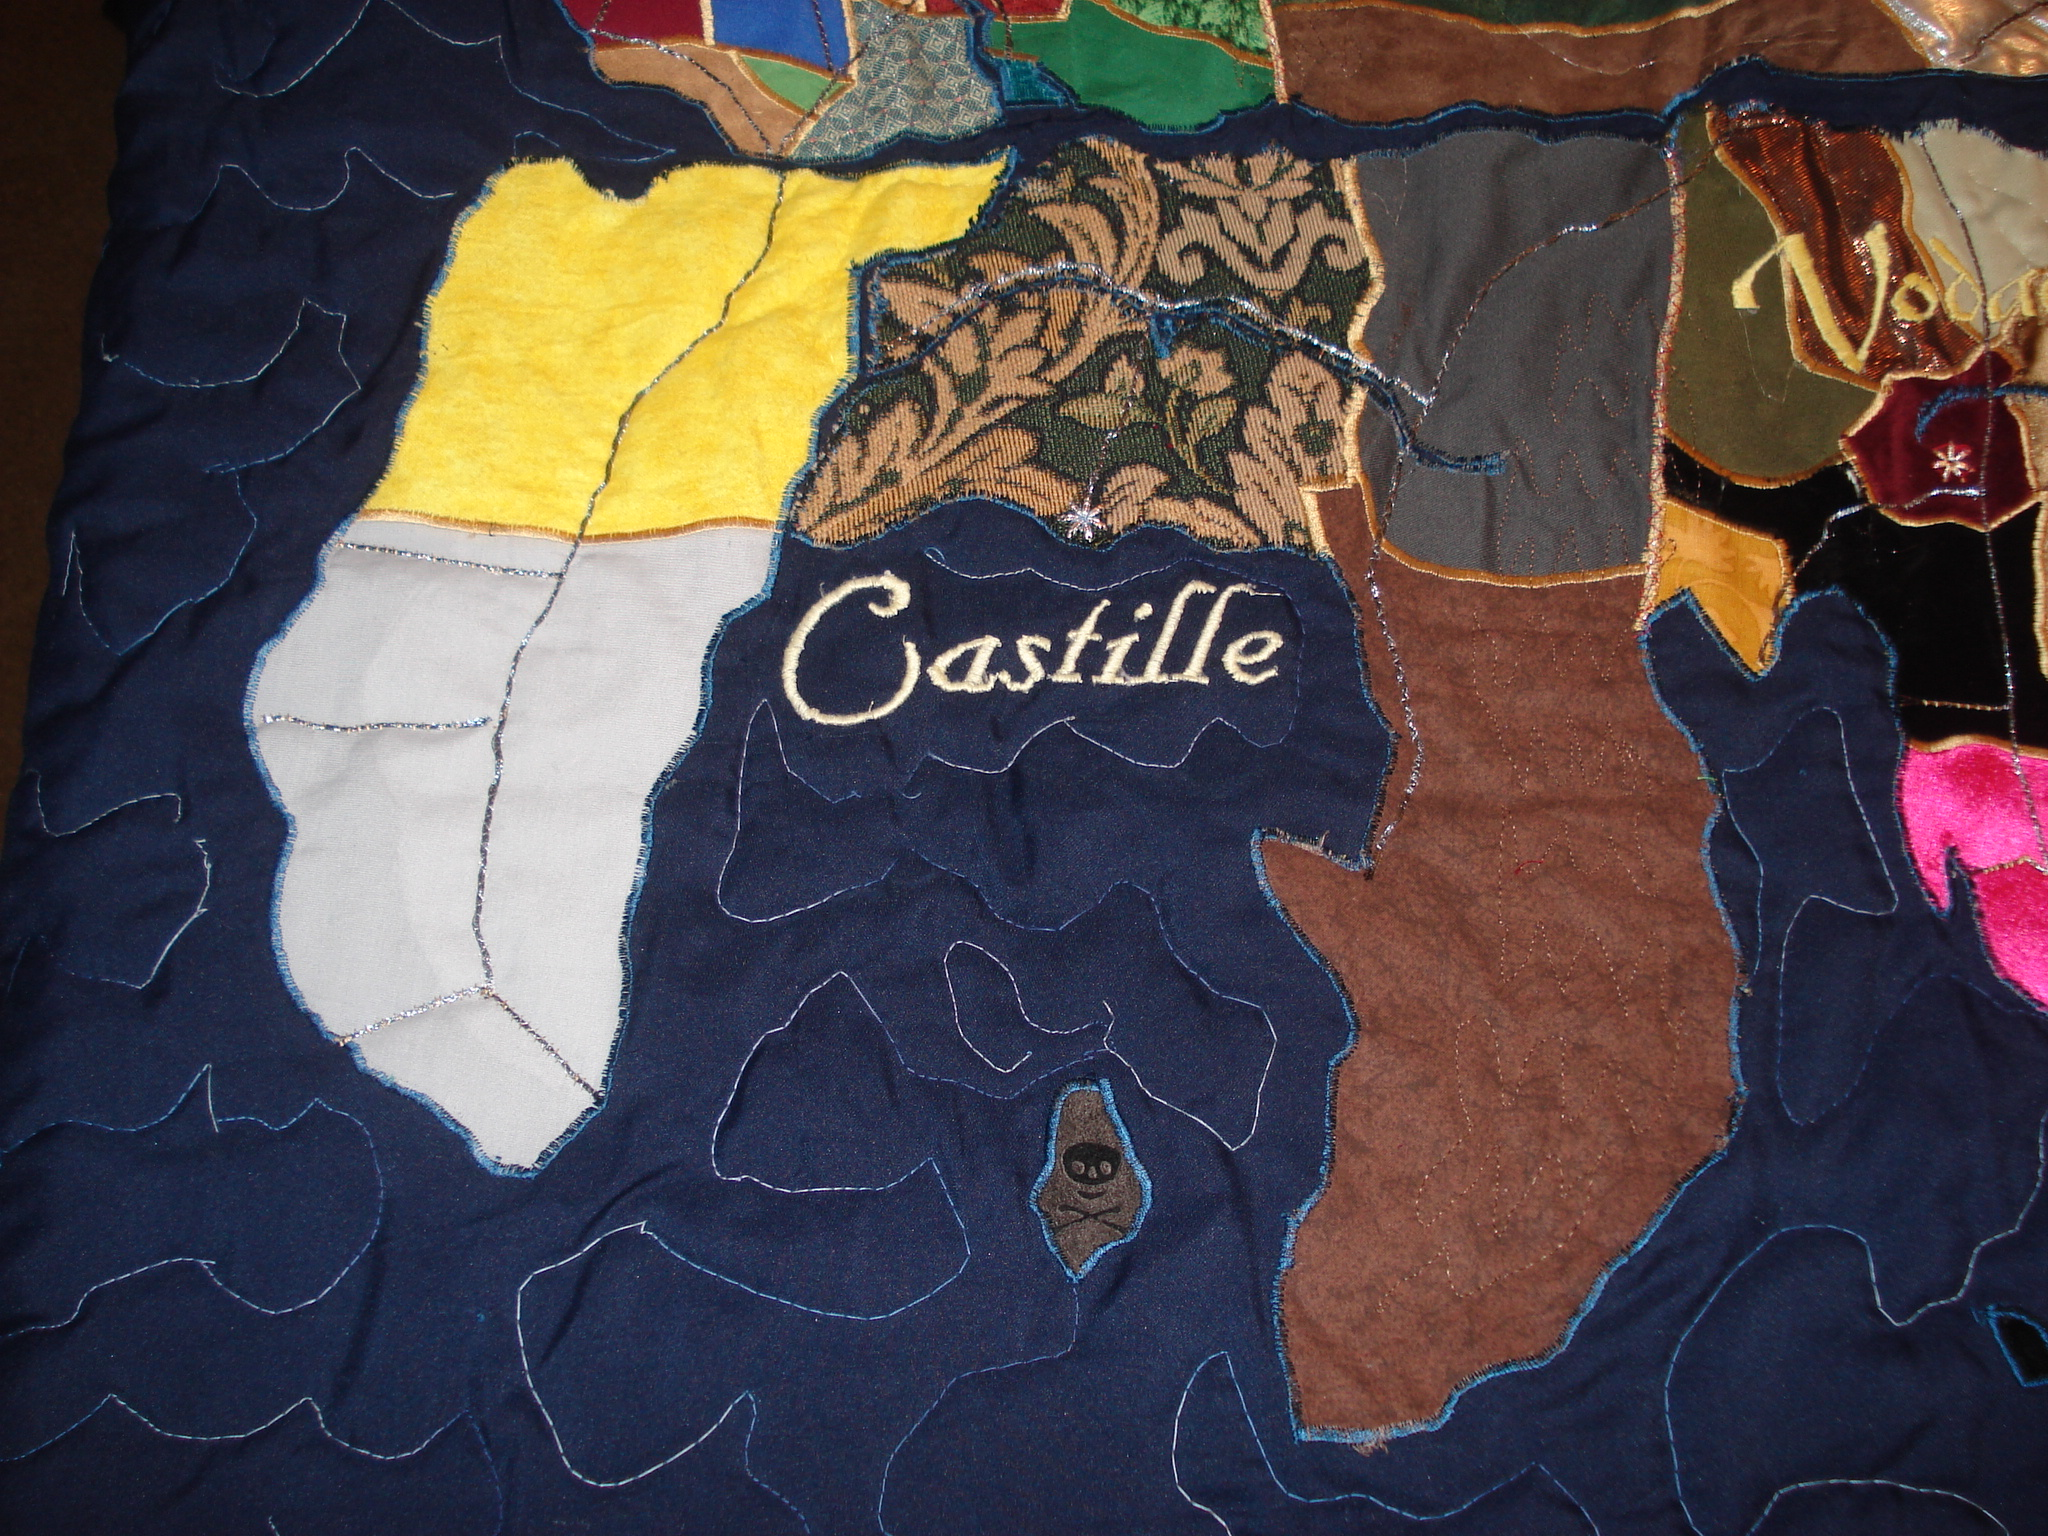 Castille - Spain.  The patterned fabric in the middle (the grain-growing heartland) was very thick and stiff, but otherwise things went well.  The island at the bottom is ruled by pirates.